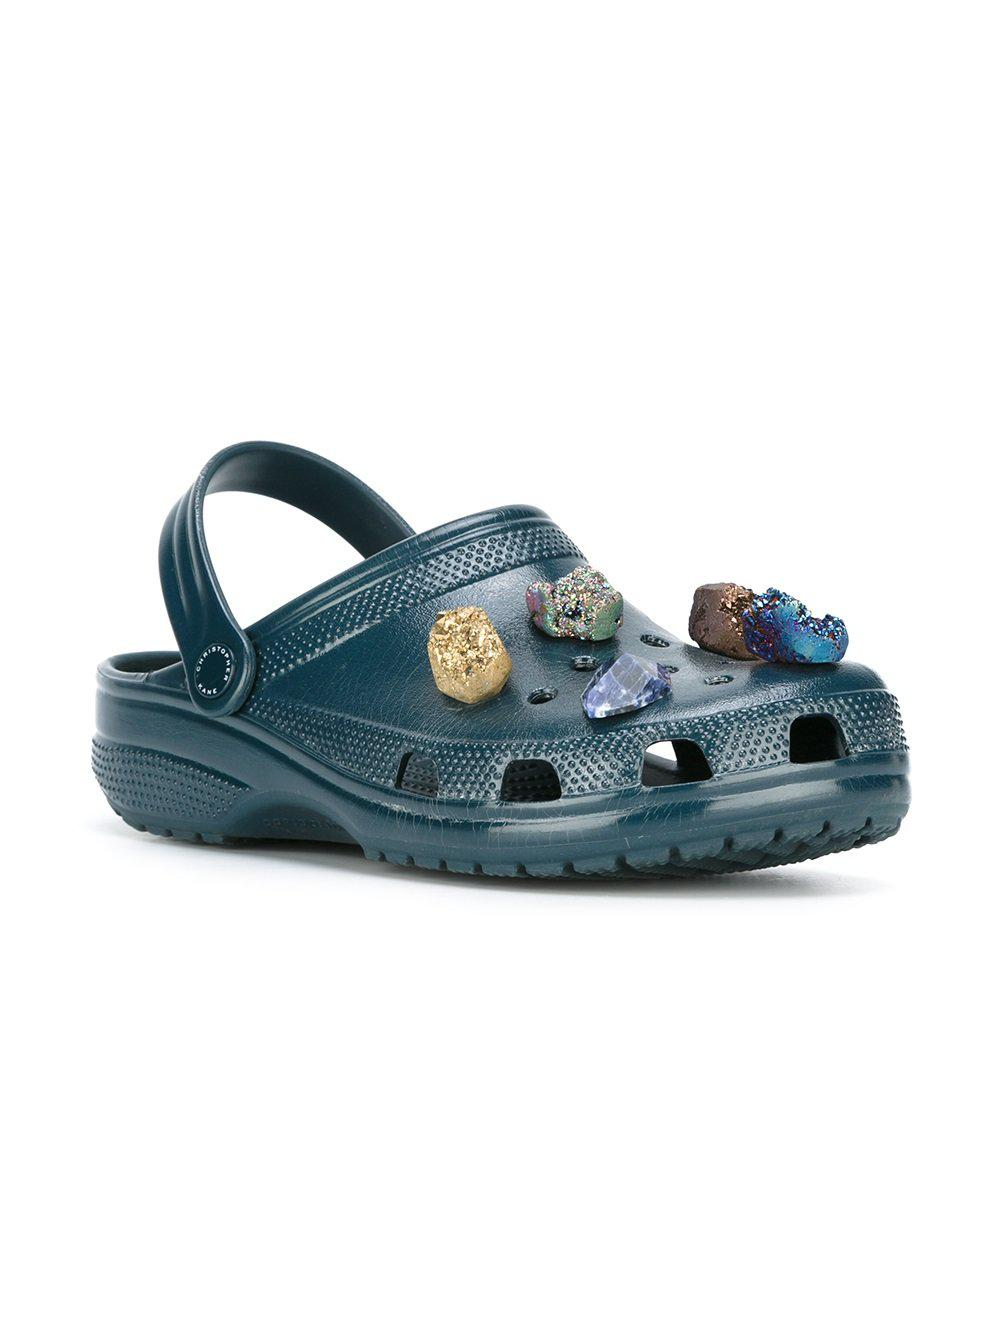 d30dbba7e0251 Lyst - Christopher Kane Stone Embellished Crocs Clogs in Blue